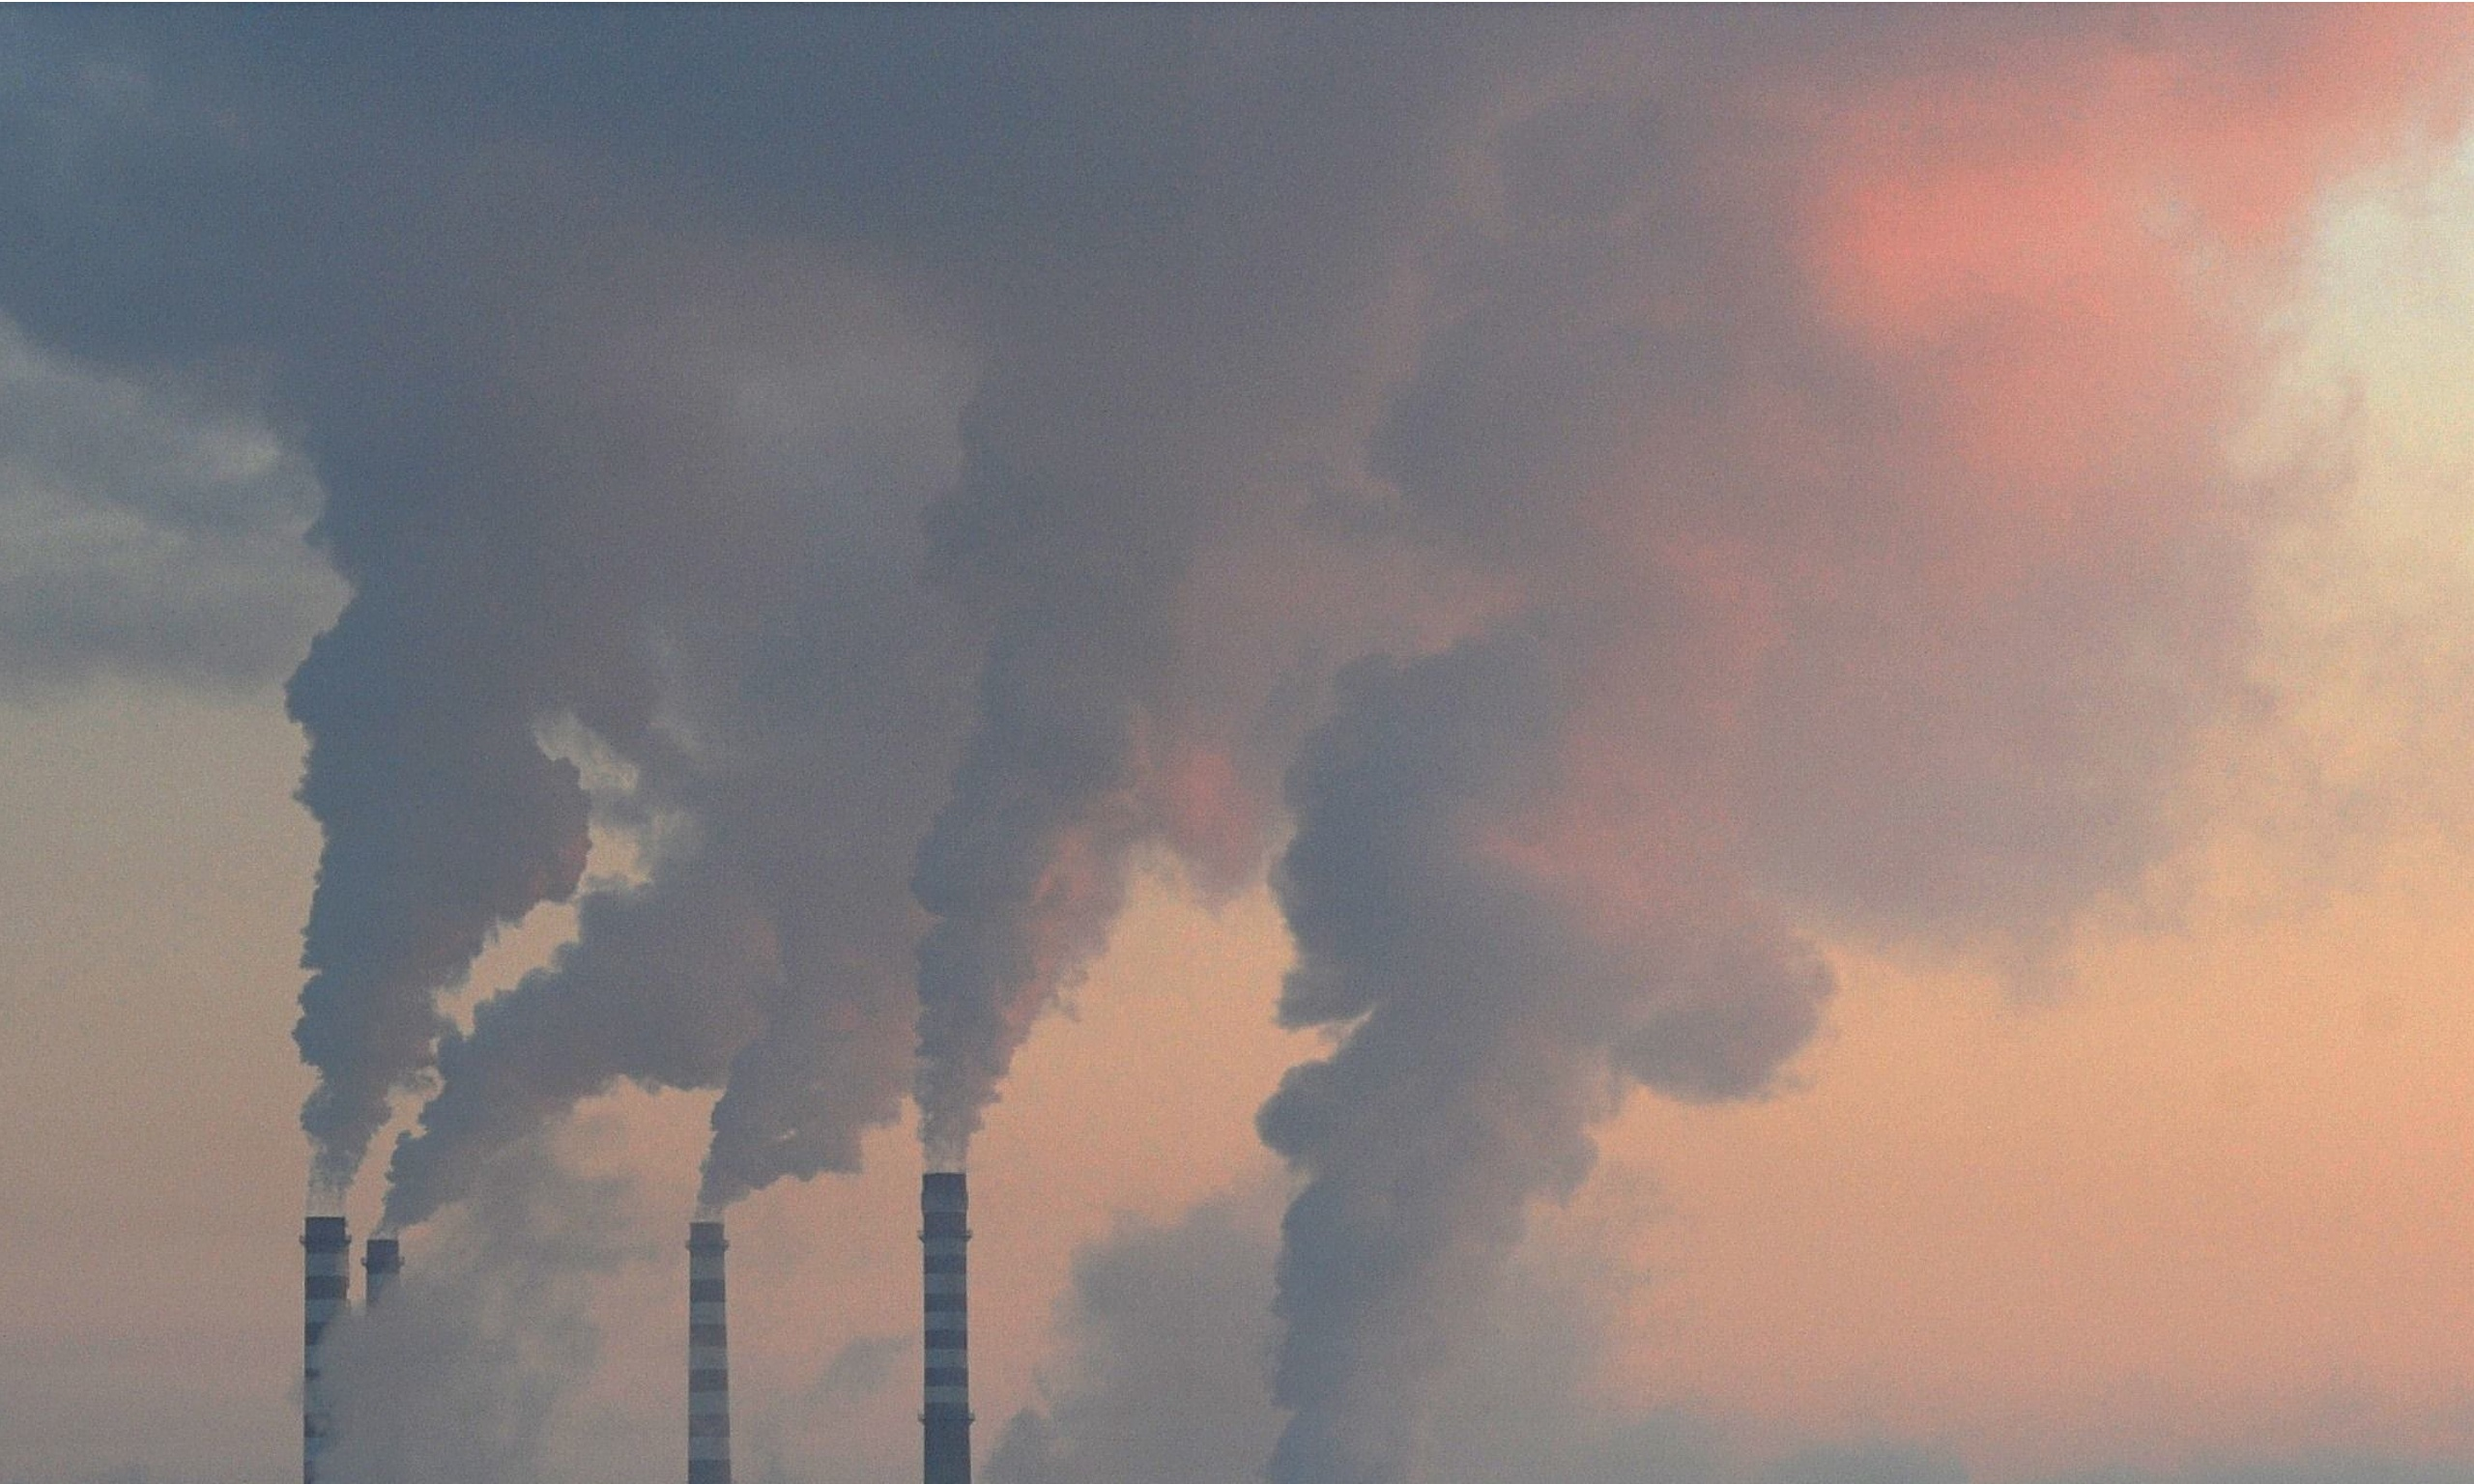 Climate change report: prevent damage by overhauling global economy